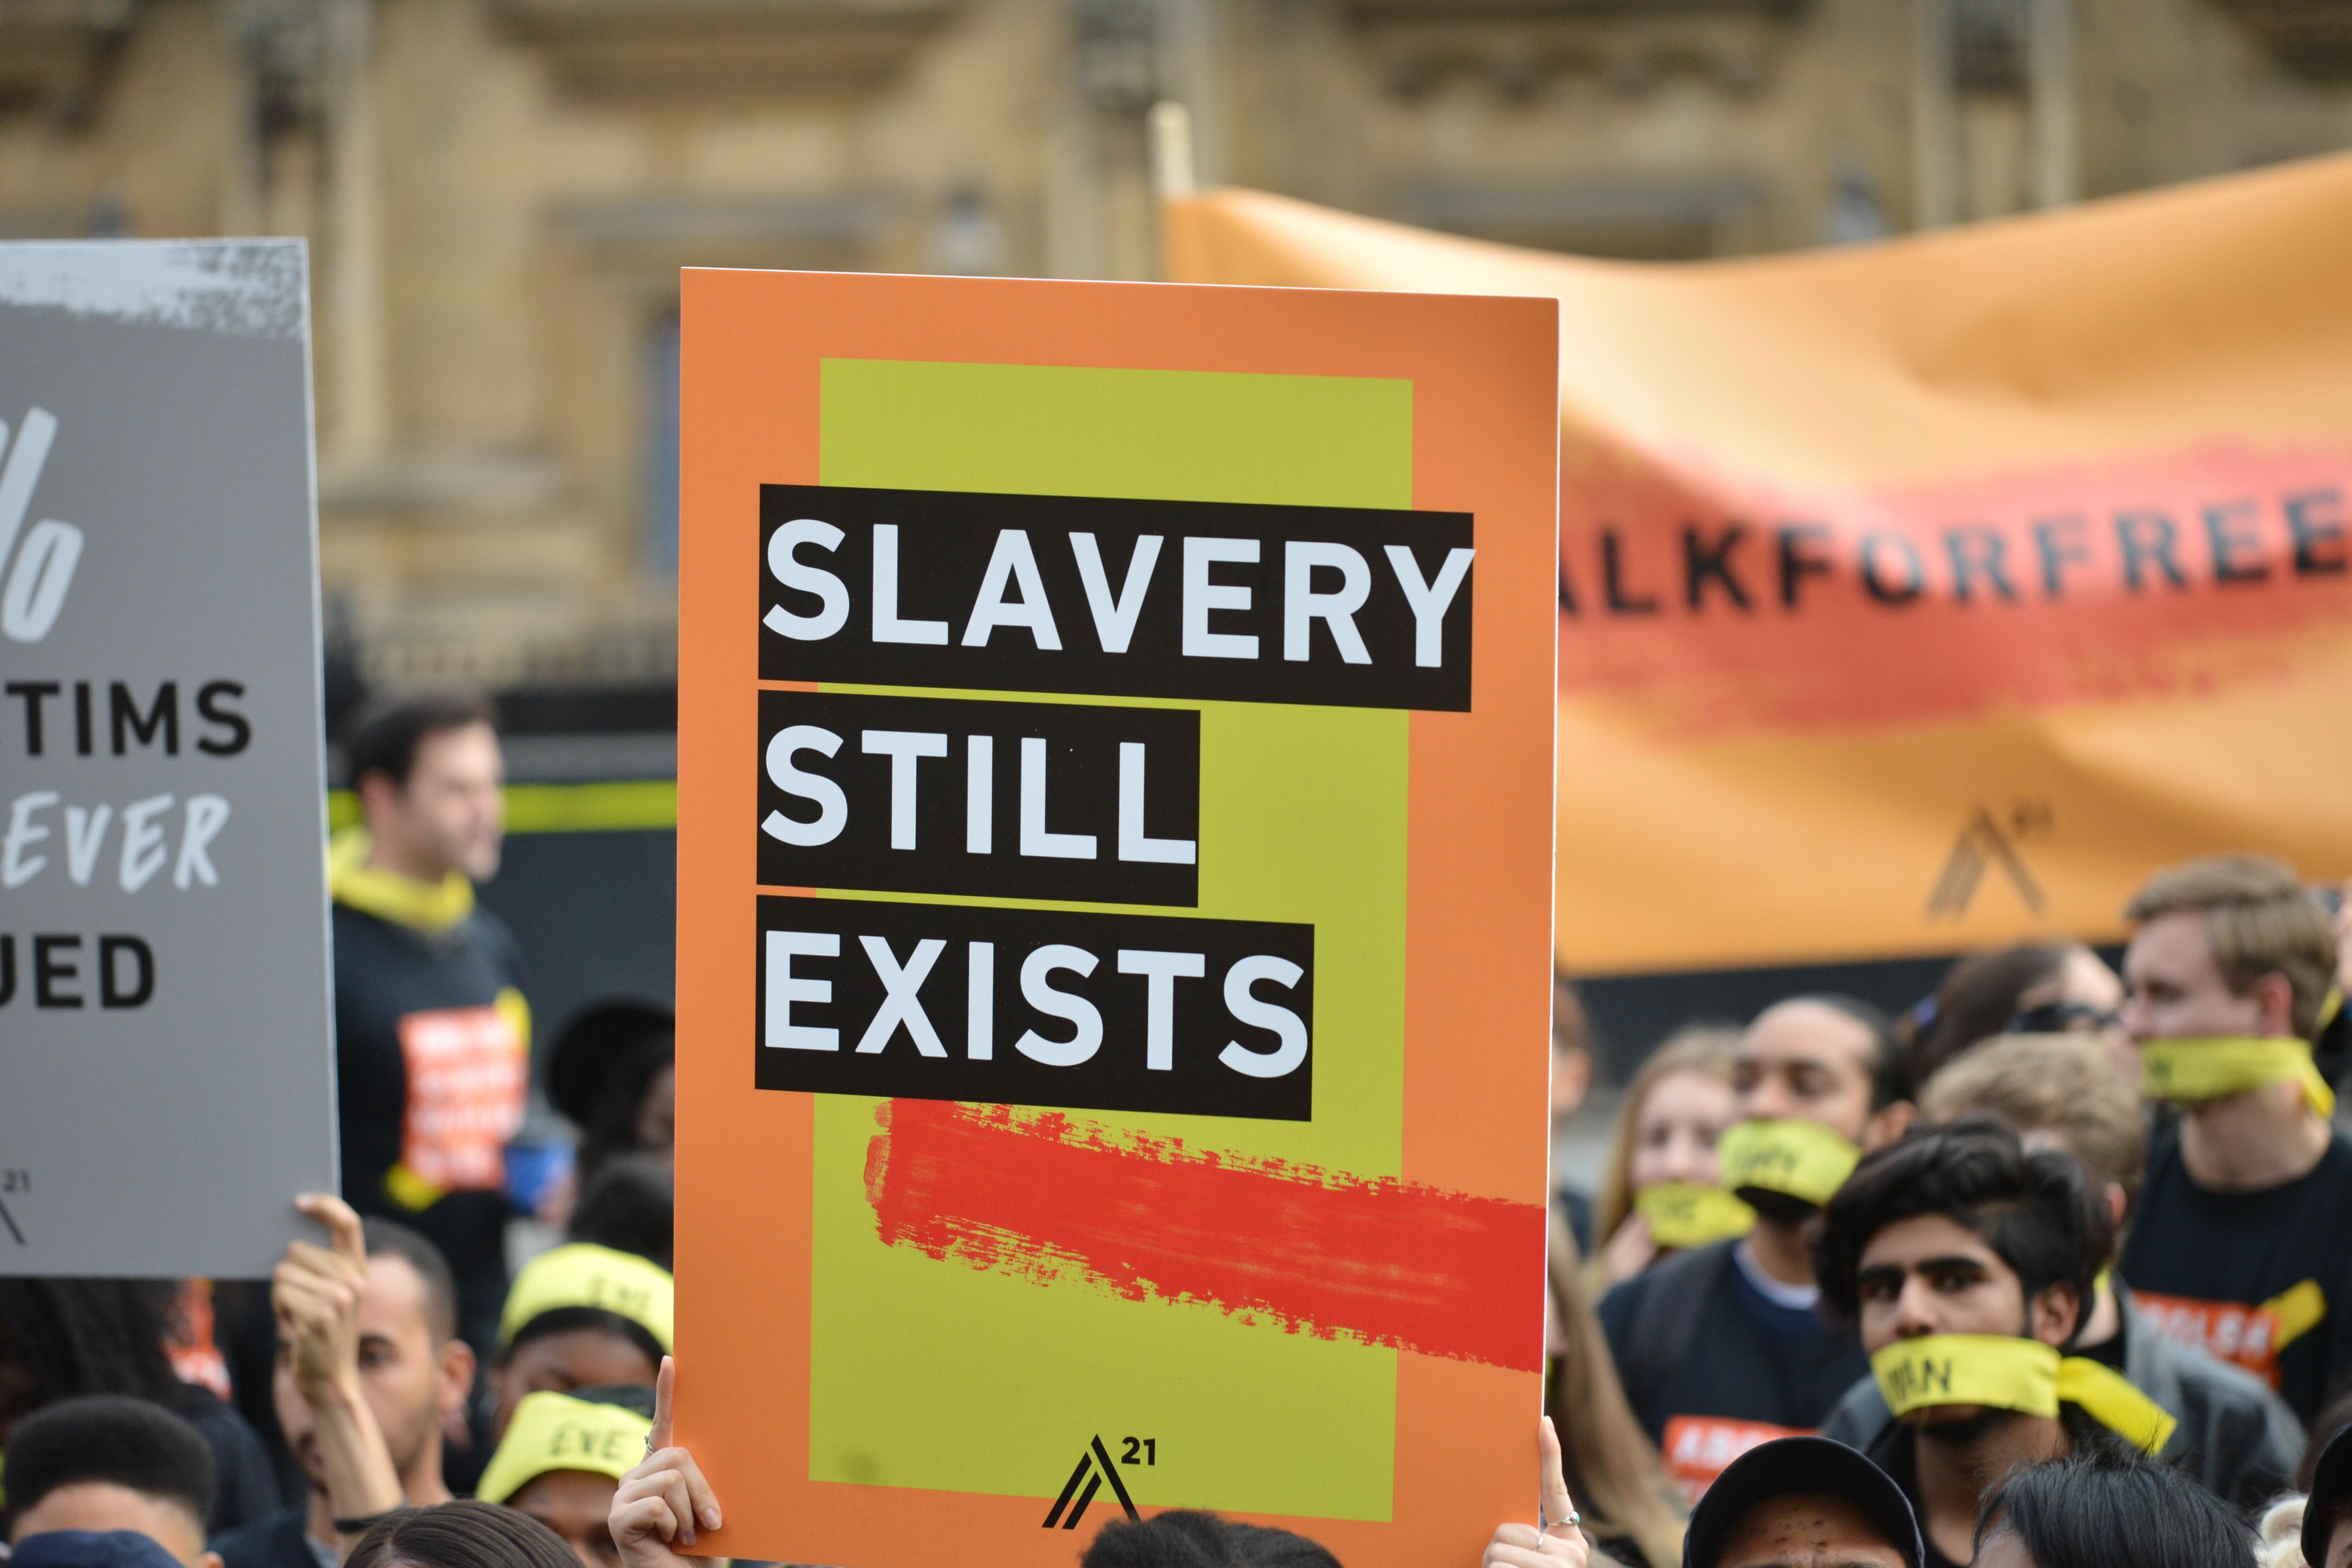 LONDON, UNITED KINGDOM - OCTOBER 14: People marching against modern slavery through London wearing face masks representing the silence of modern slaves in forced labour and sexual exploitation on October 14, 2017 in London, England.  PHOTOGRAPH BY Mathew Chattle / Barcroft Images (Photo credit should read Mathew Chattle / Barcroft Media via Getty Images / Barcroft Media via Getty Images)